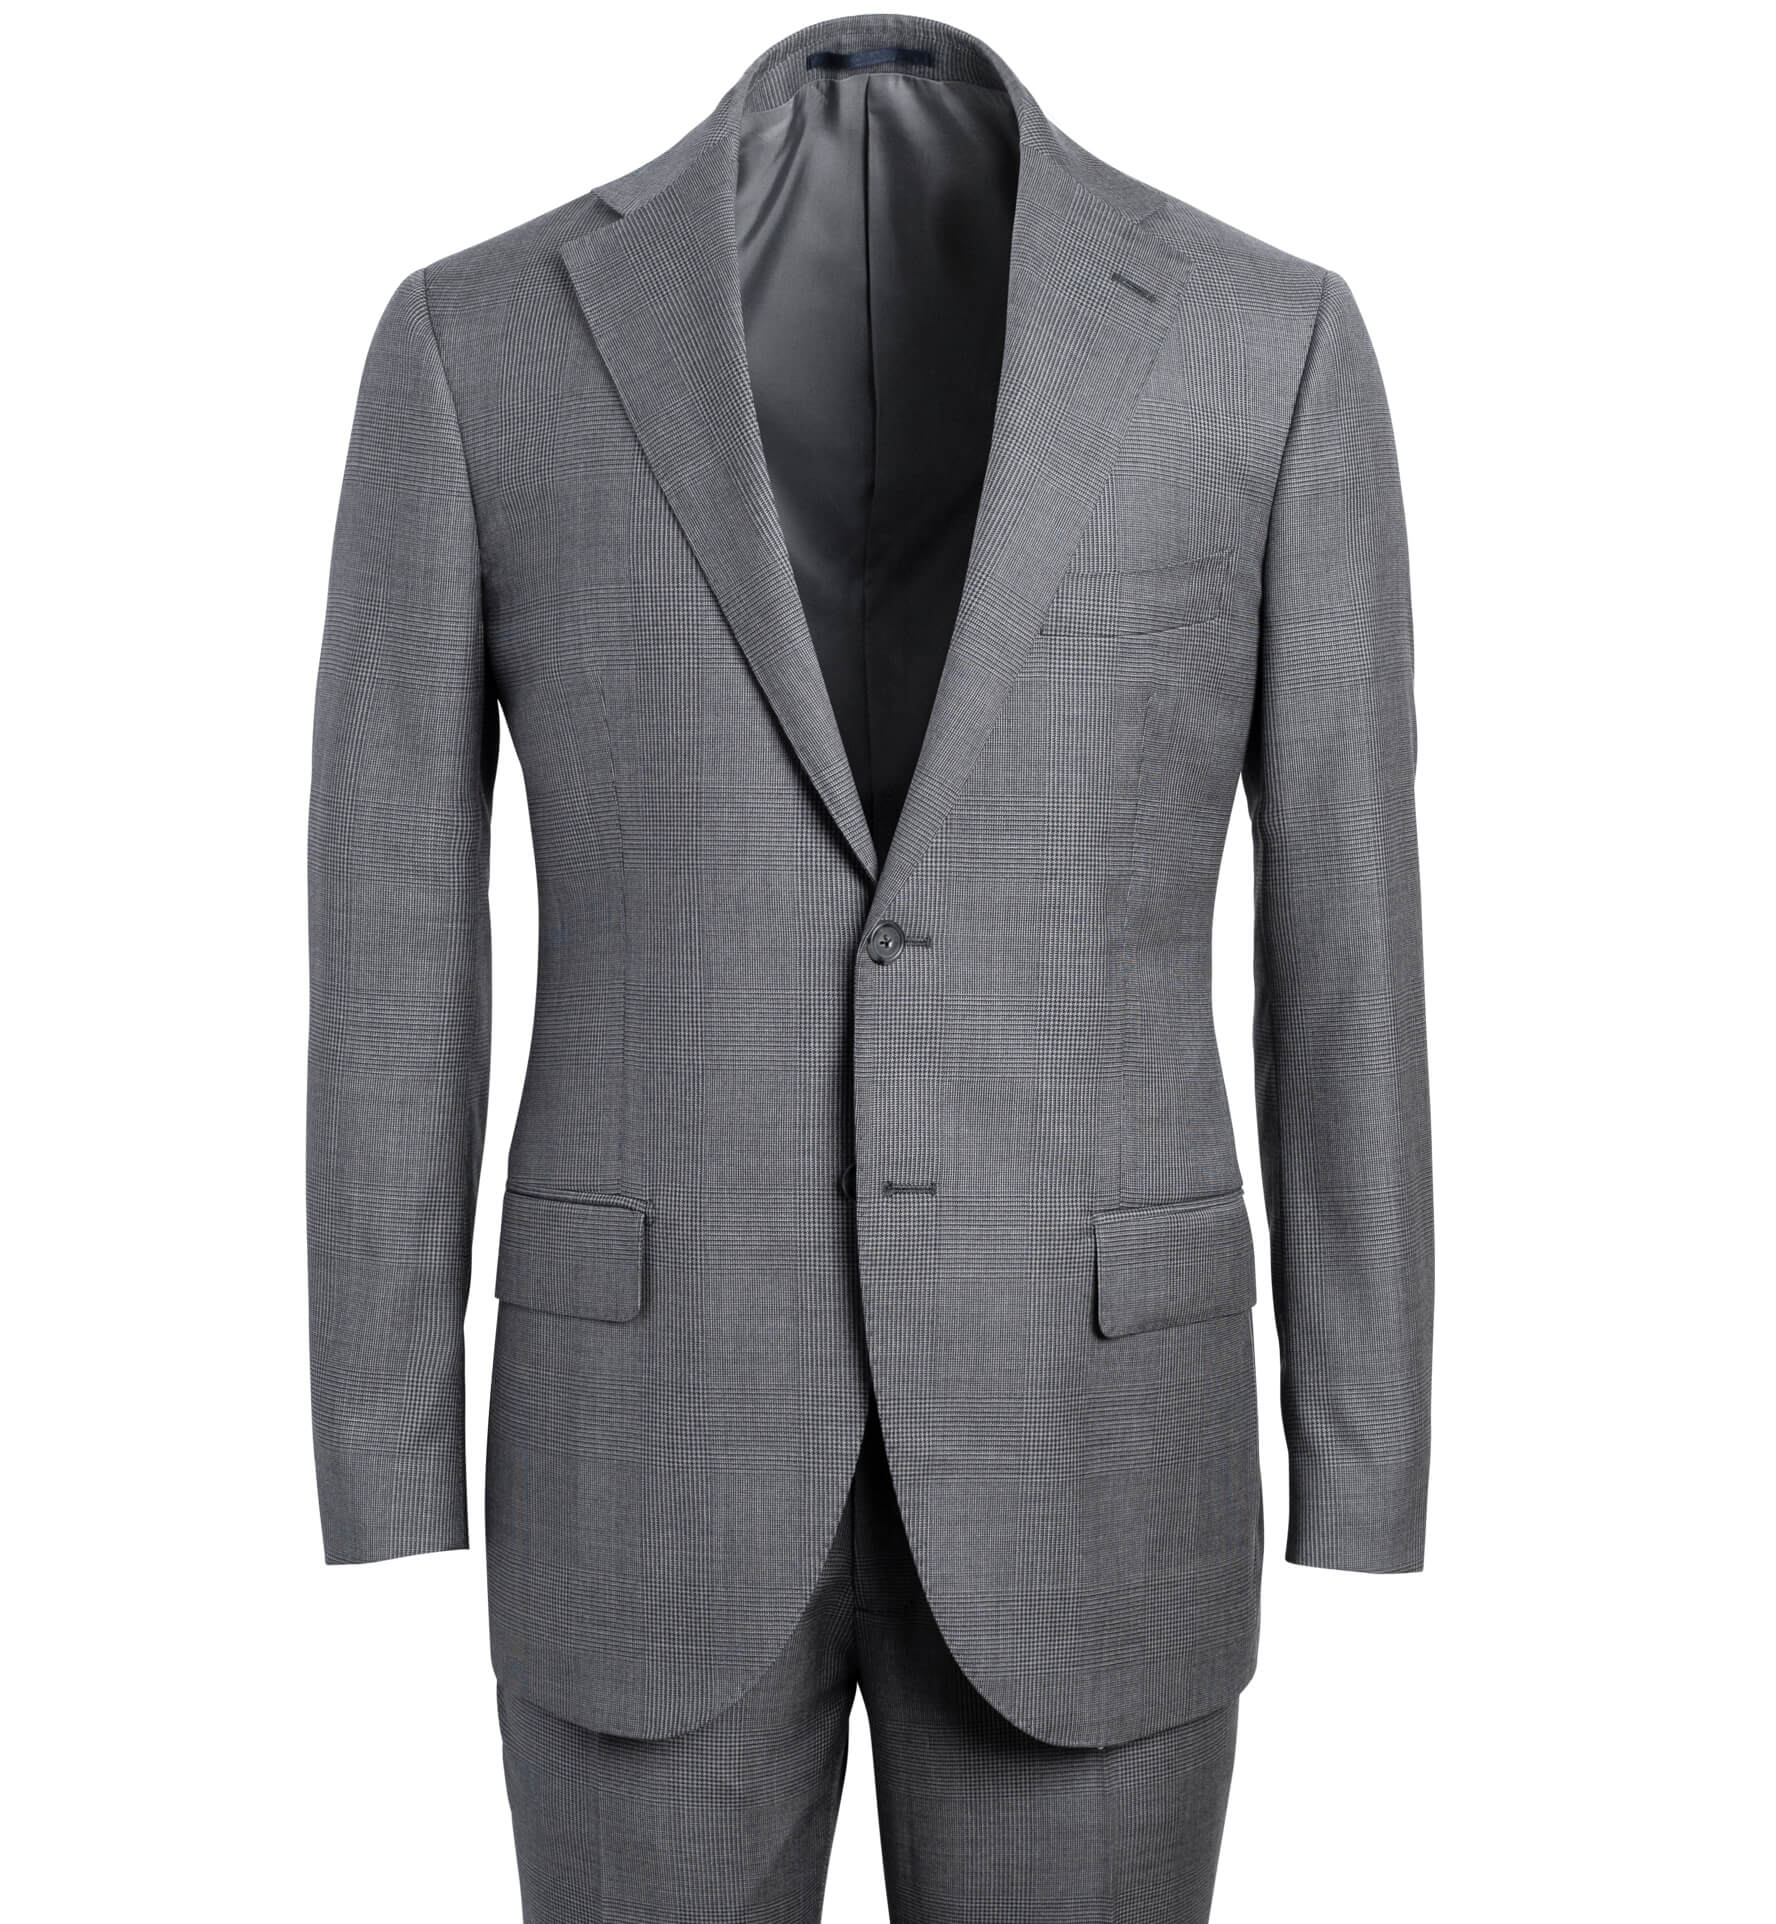 Zoom Image of Allen Grey S130s Large Glen Plaid Suit